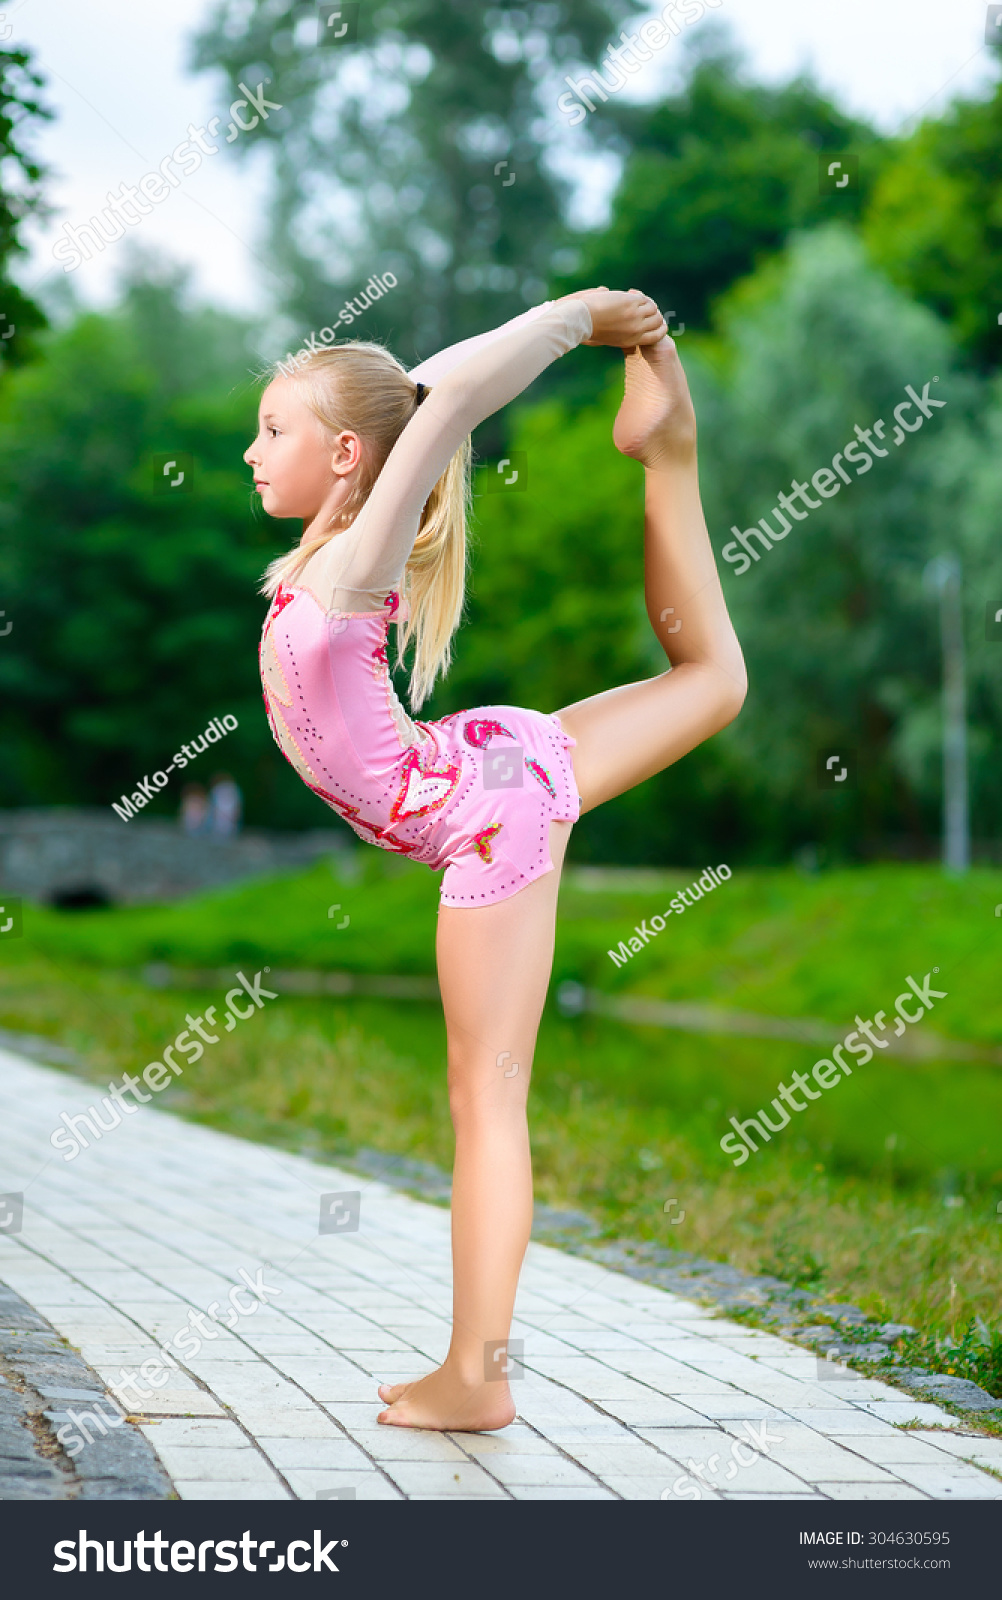 how to become more flexible fast for gymnastics